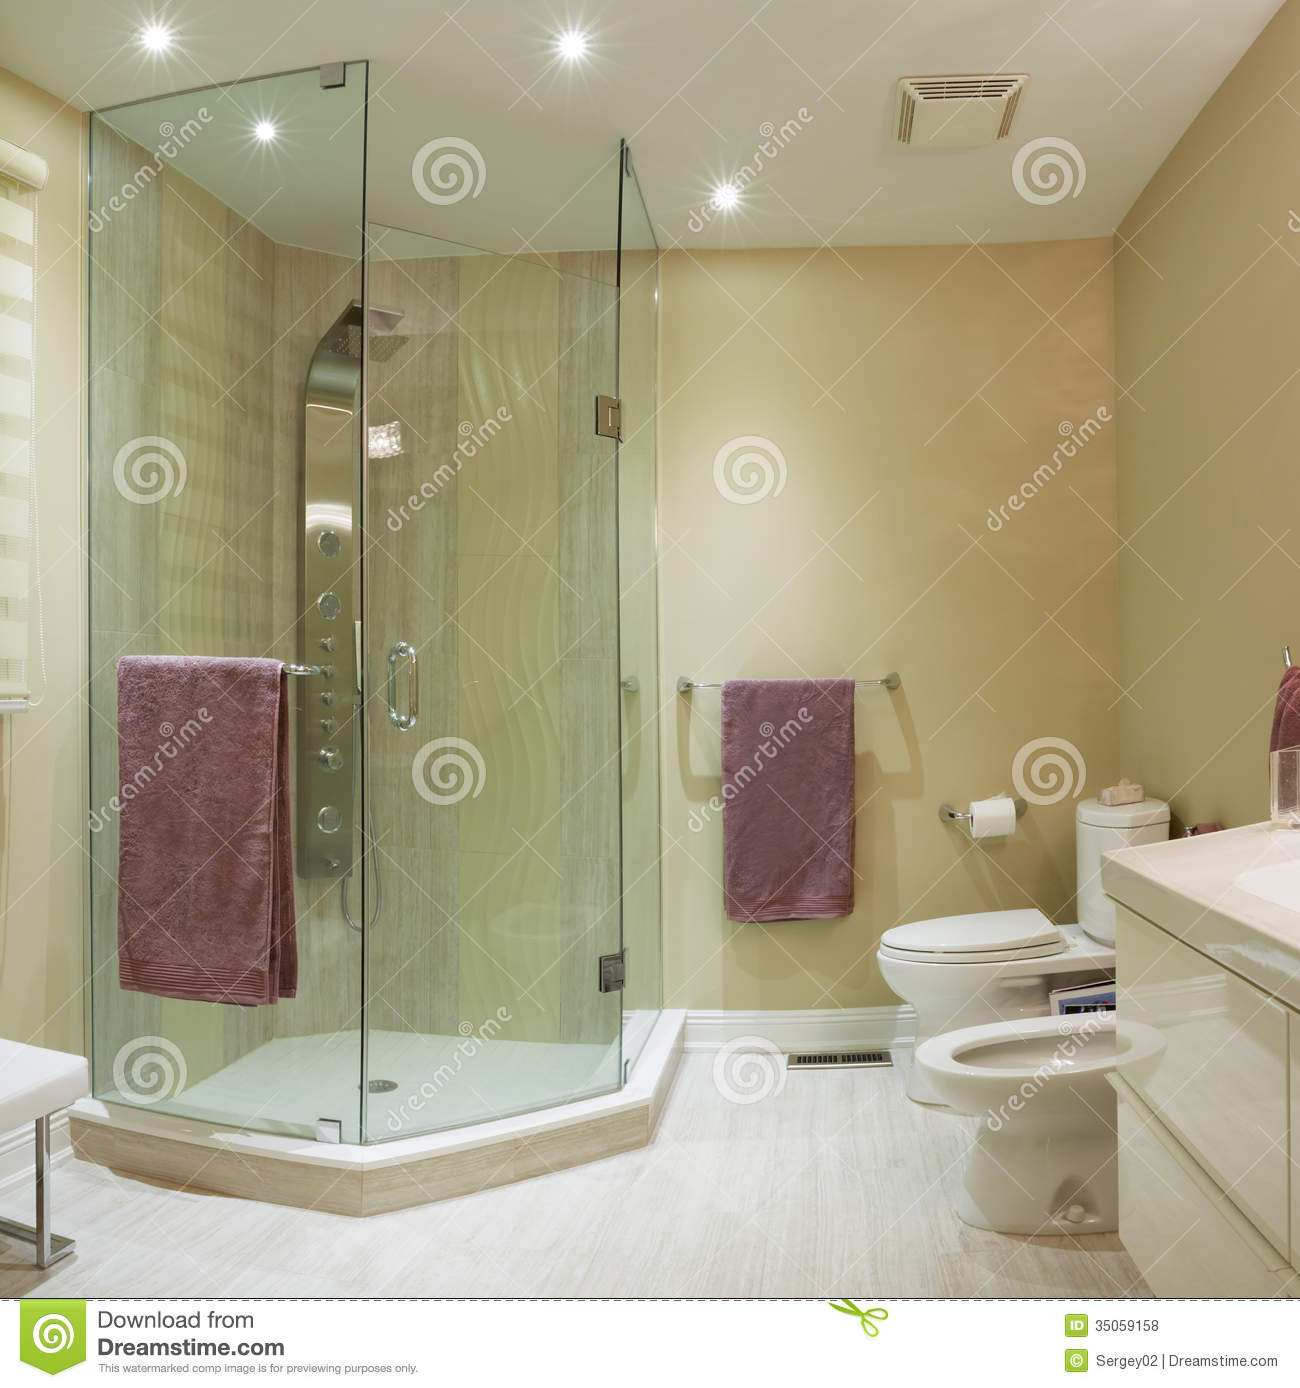 Interior design royalty free stock photos image 35059158 for Bathroom images for home